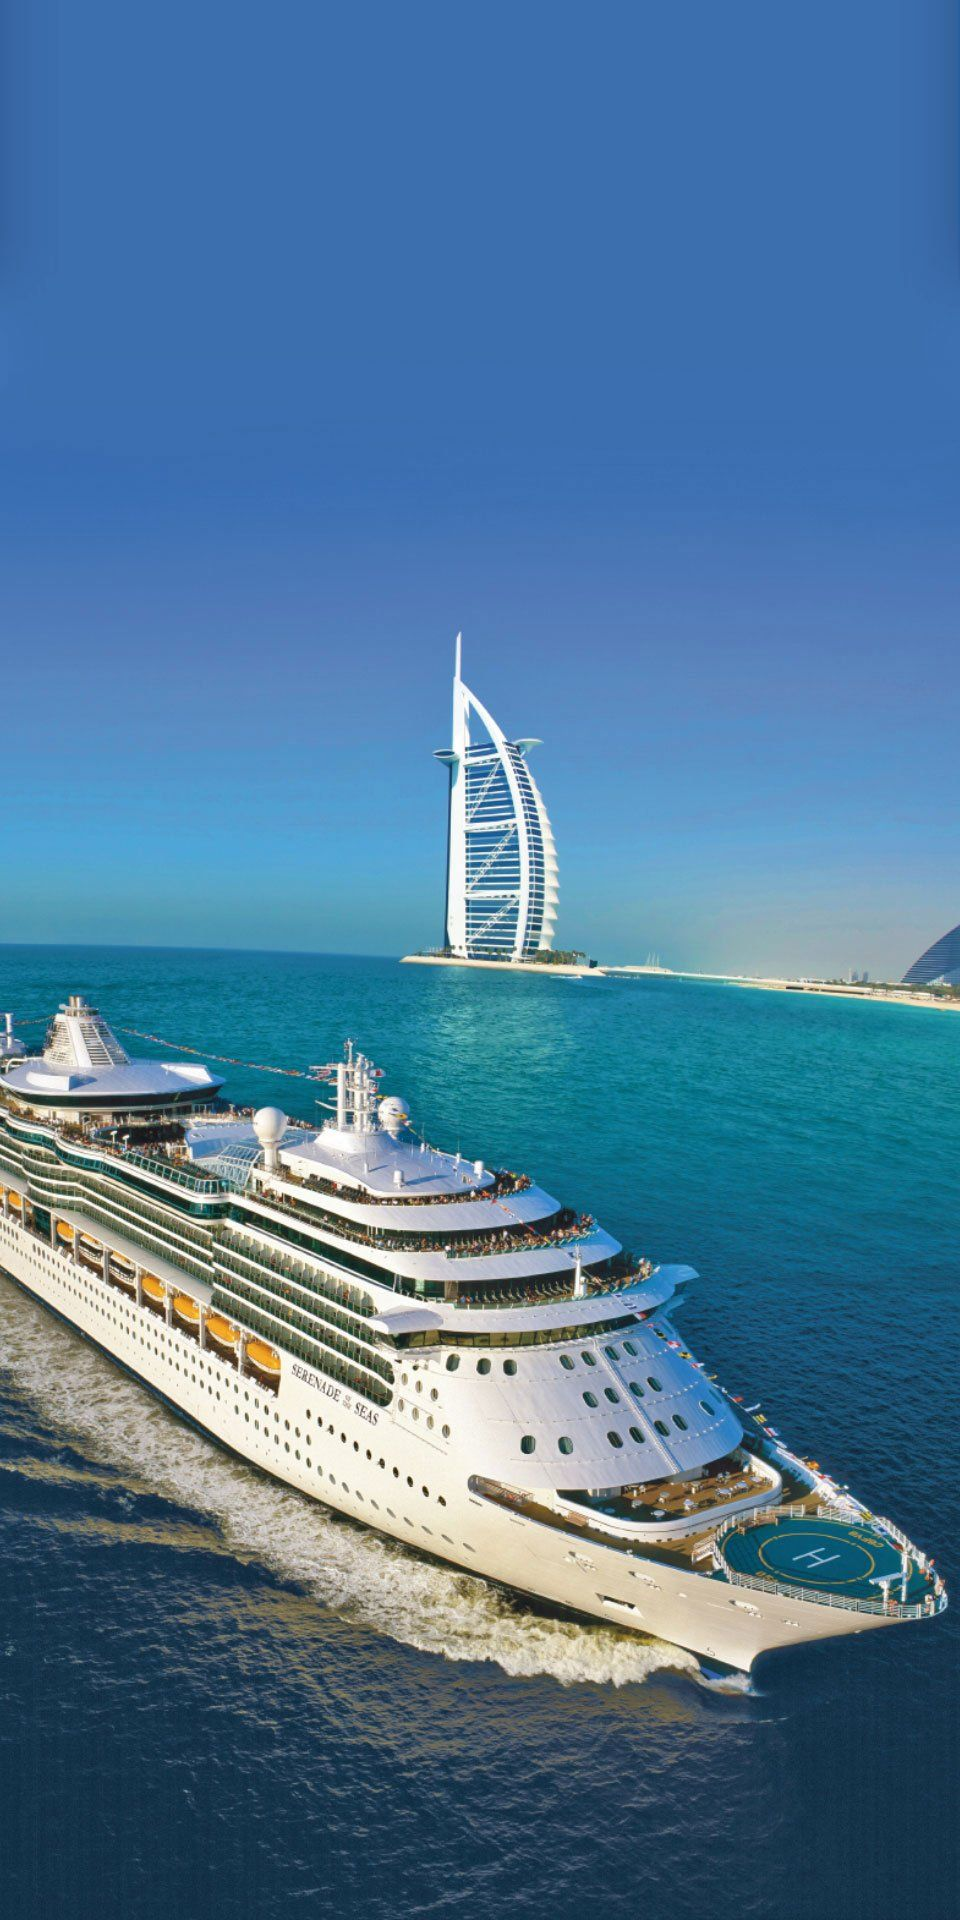 Serenade Of The Seas Destination Dubai Sail To The Persian Gulf For A Luxury Vacation On O Enchantment Of The Seas Best Cruise Ships Royal Caribbean Cruise